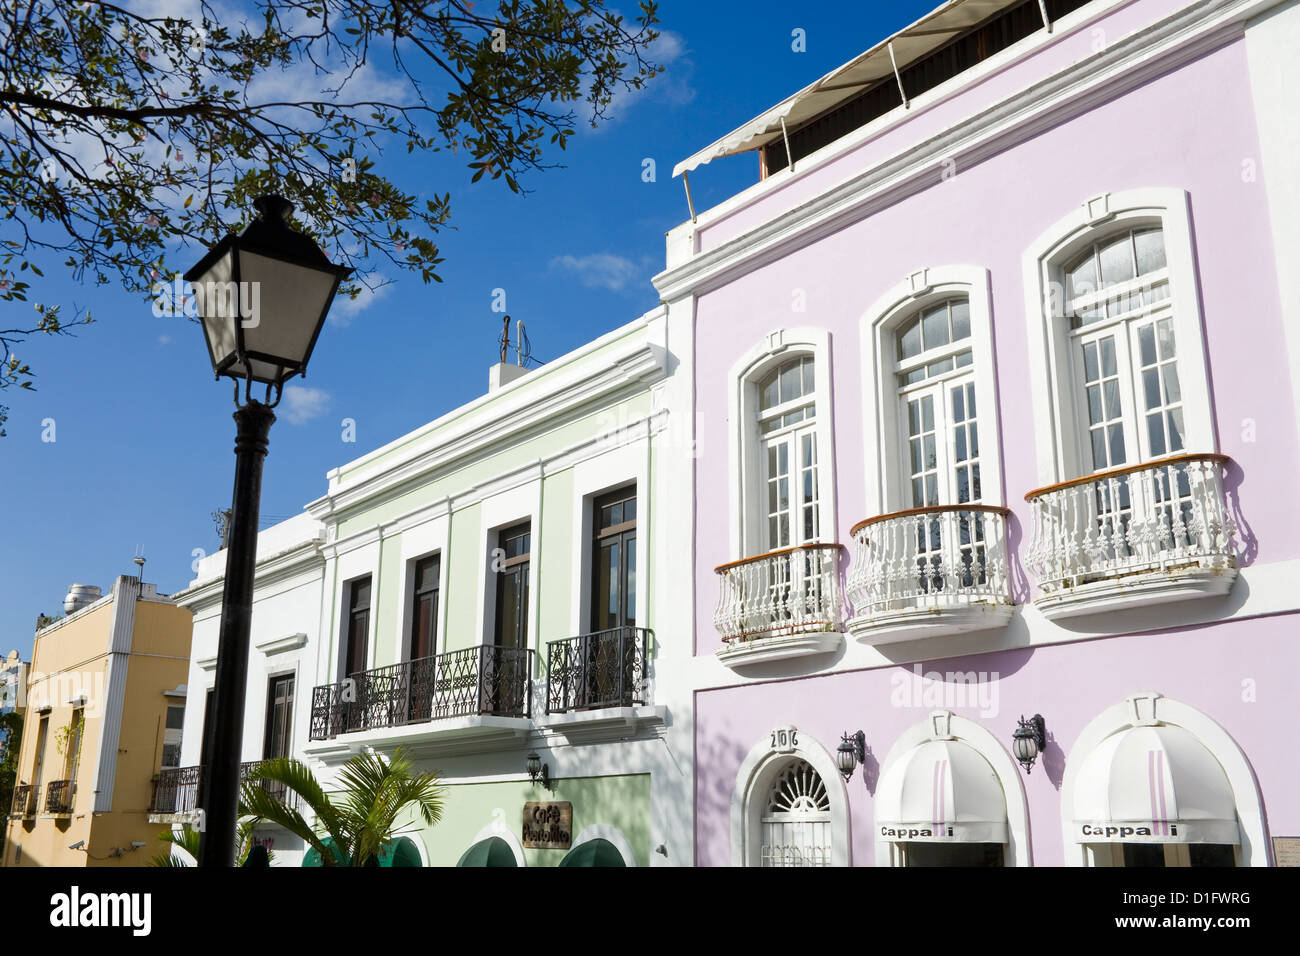 Balconies on Calle O' Donnell, Old City of San Juan, Puerto Rico Island, West Indies, Caribbean, United States - Stock Image